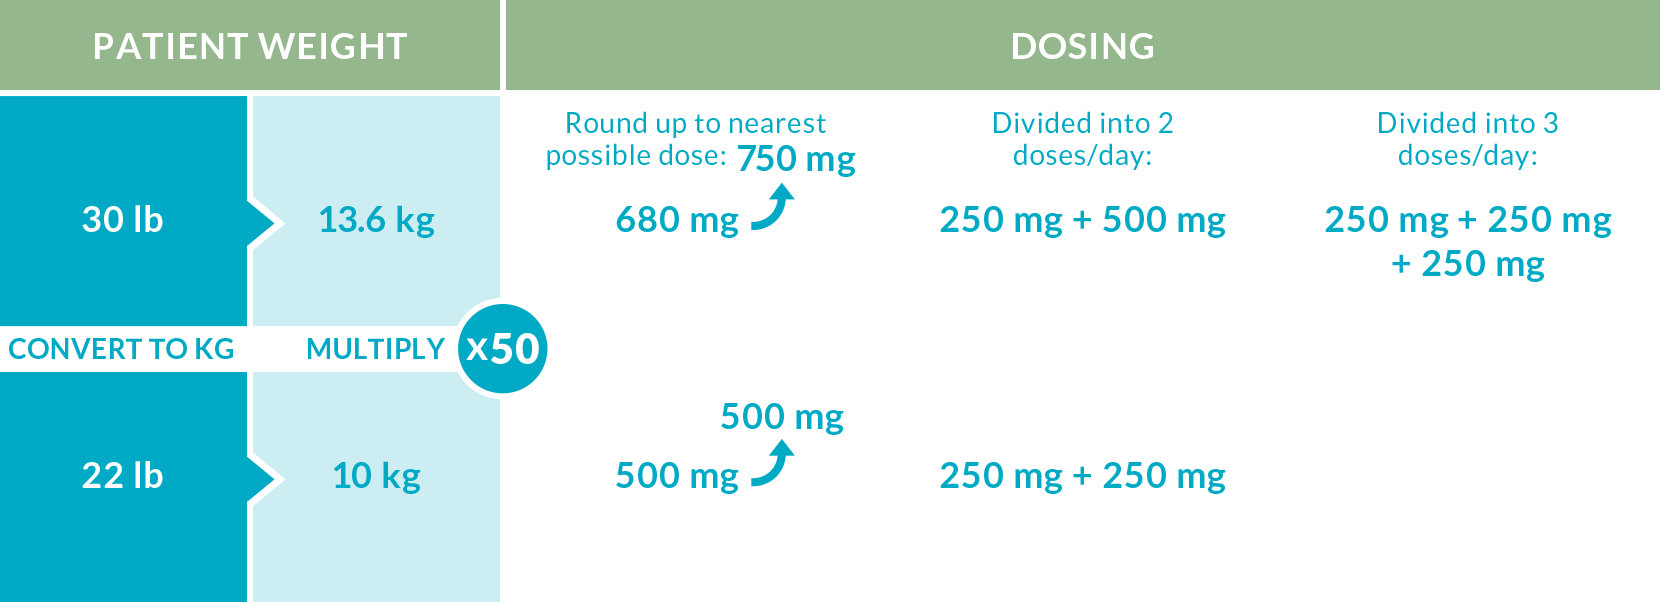 The recommended oral dosage of DIACOMIT is 50 mg/kg/day, divided into 2 or 3 separate doses, with a maximum total dosage of 3,000 mg/day